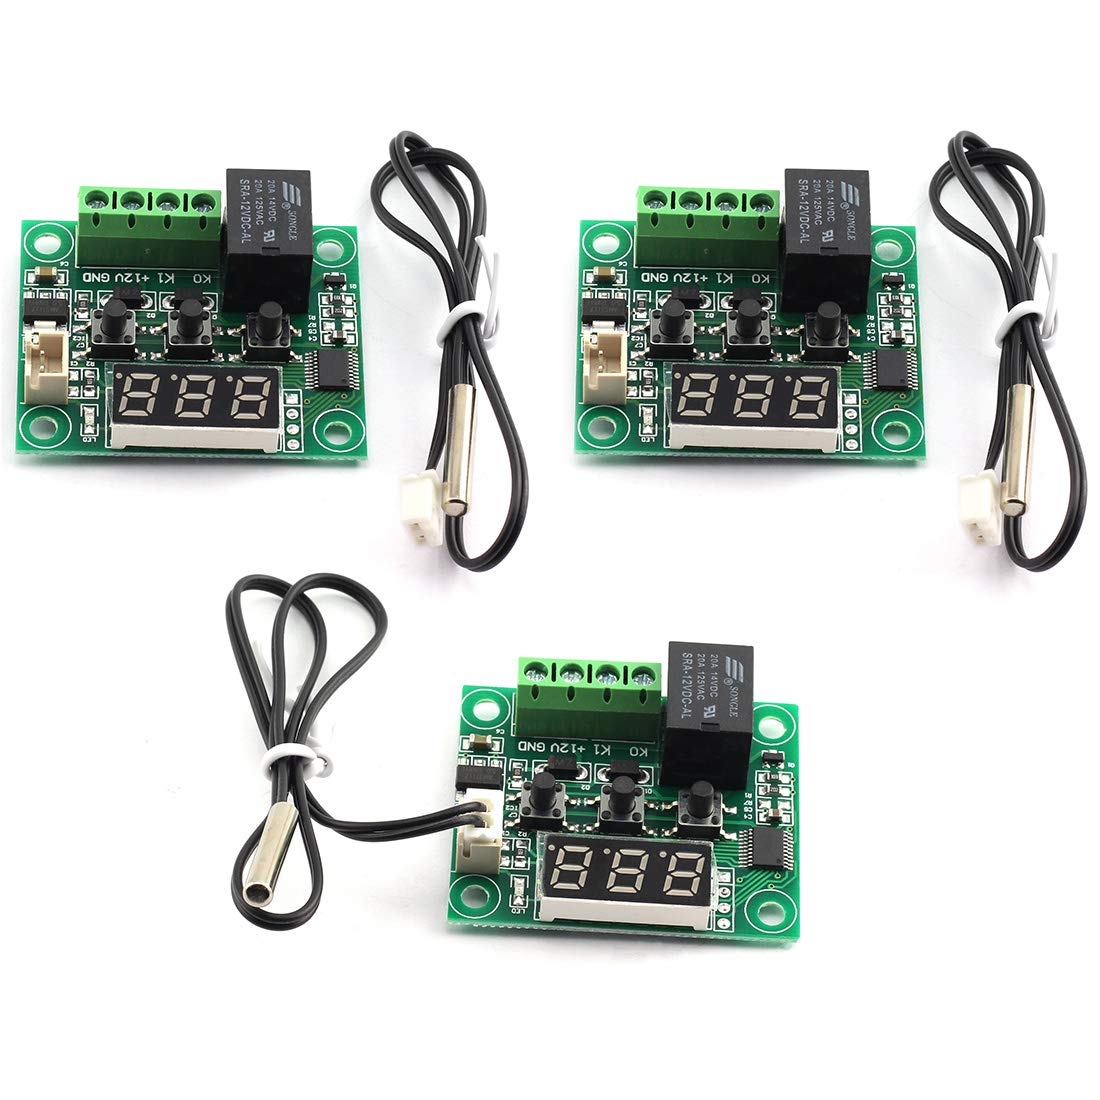 DZS Elec 3pcs XH-W1209 Micro Temperature Controller Switch DC 12V LED Digital Heating/Cooling Temp Thermostat Relay Module -50 to 110 Degree 10A with Waterproof Sensor Probe